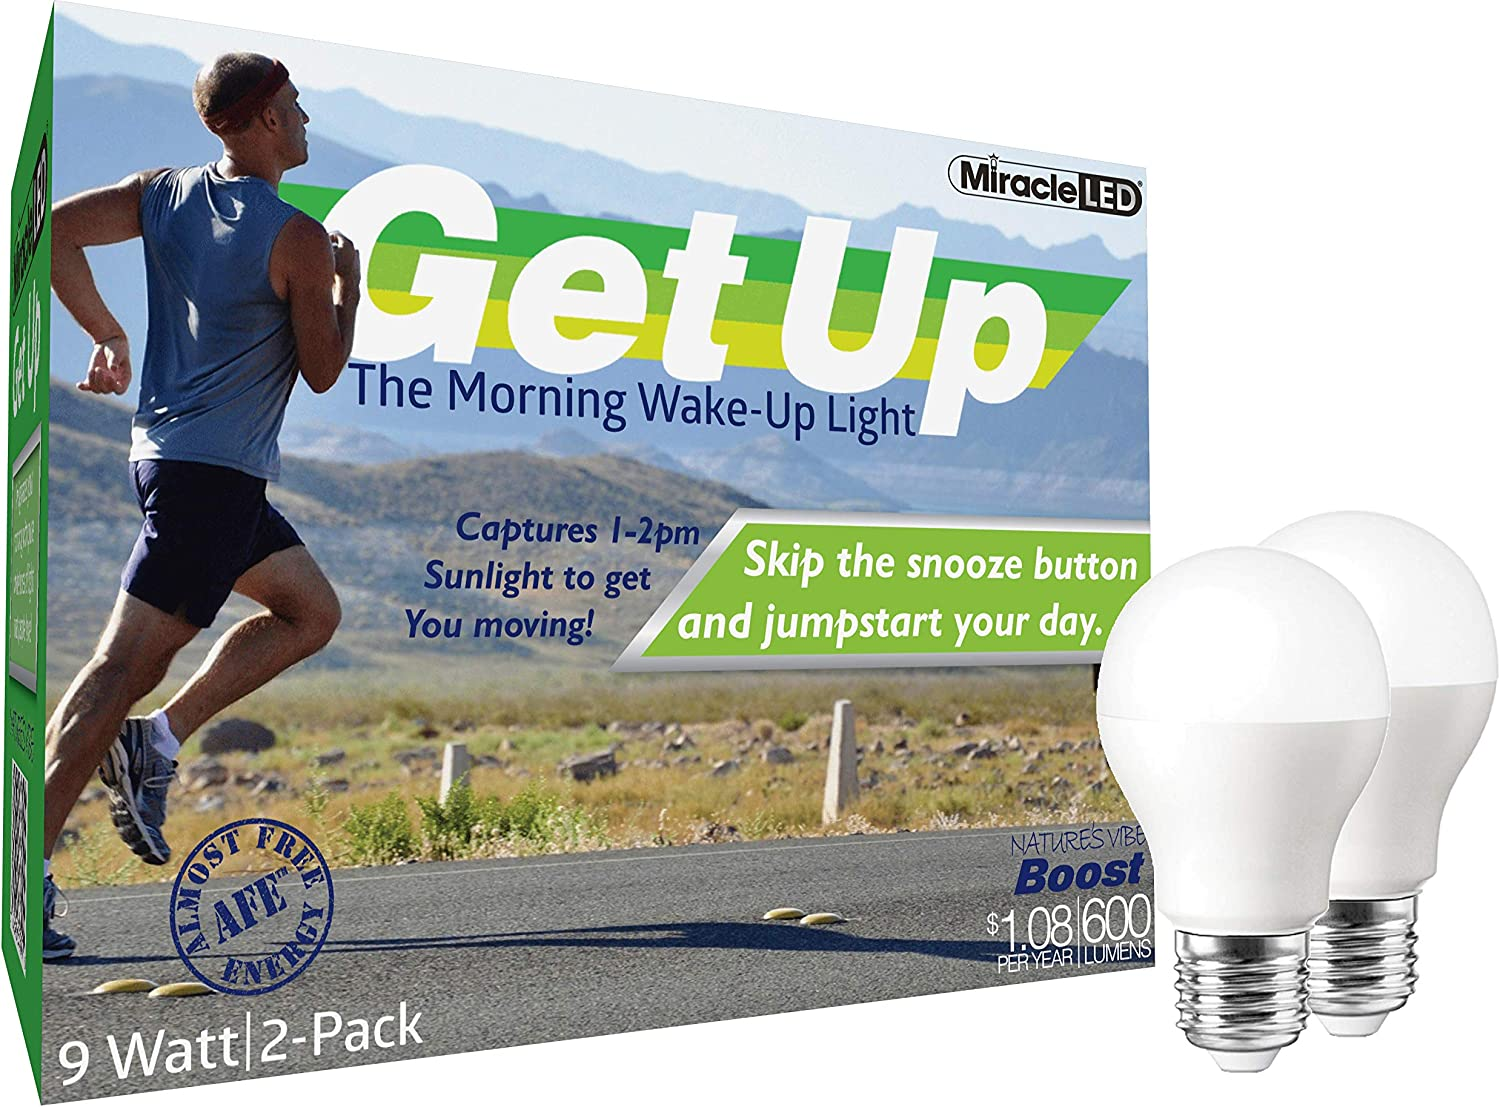 MiracleLED 604398 Miracle LED Almost Free Energy Hi-Activity Morning Wake Up Light 2-Pack Replacing Old, Hot 60W Incandescent Bulbs, 2 Piece